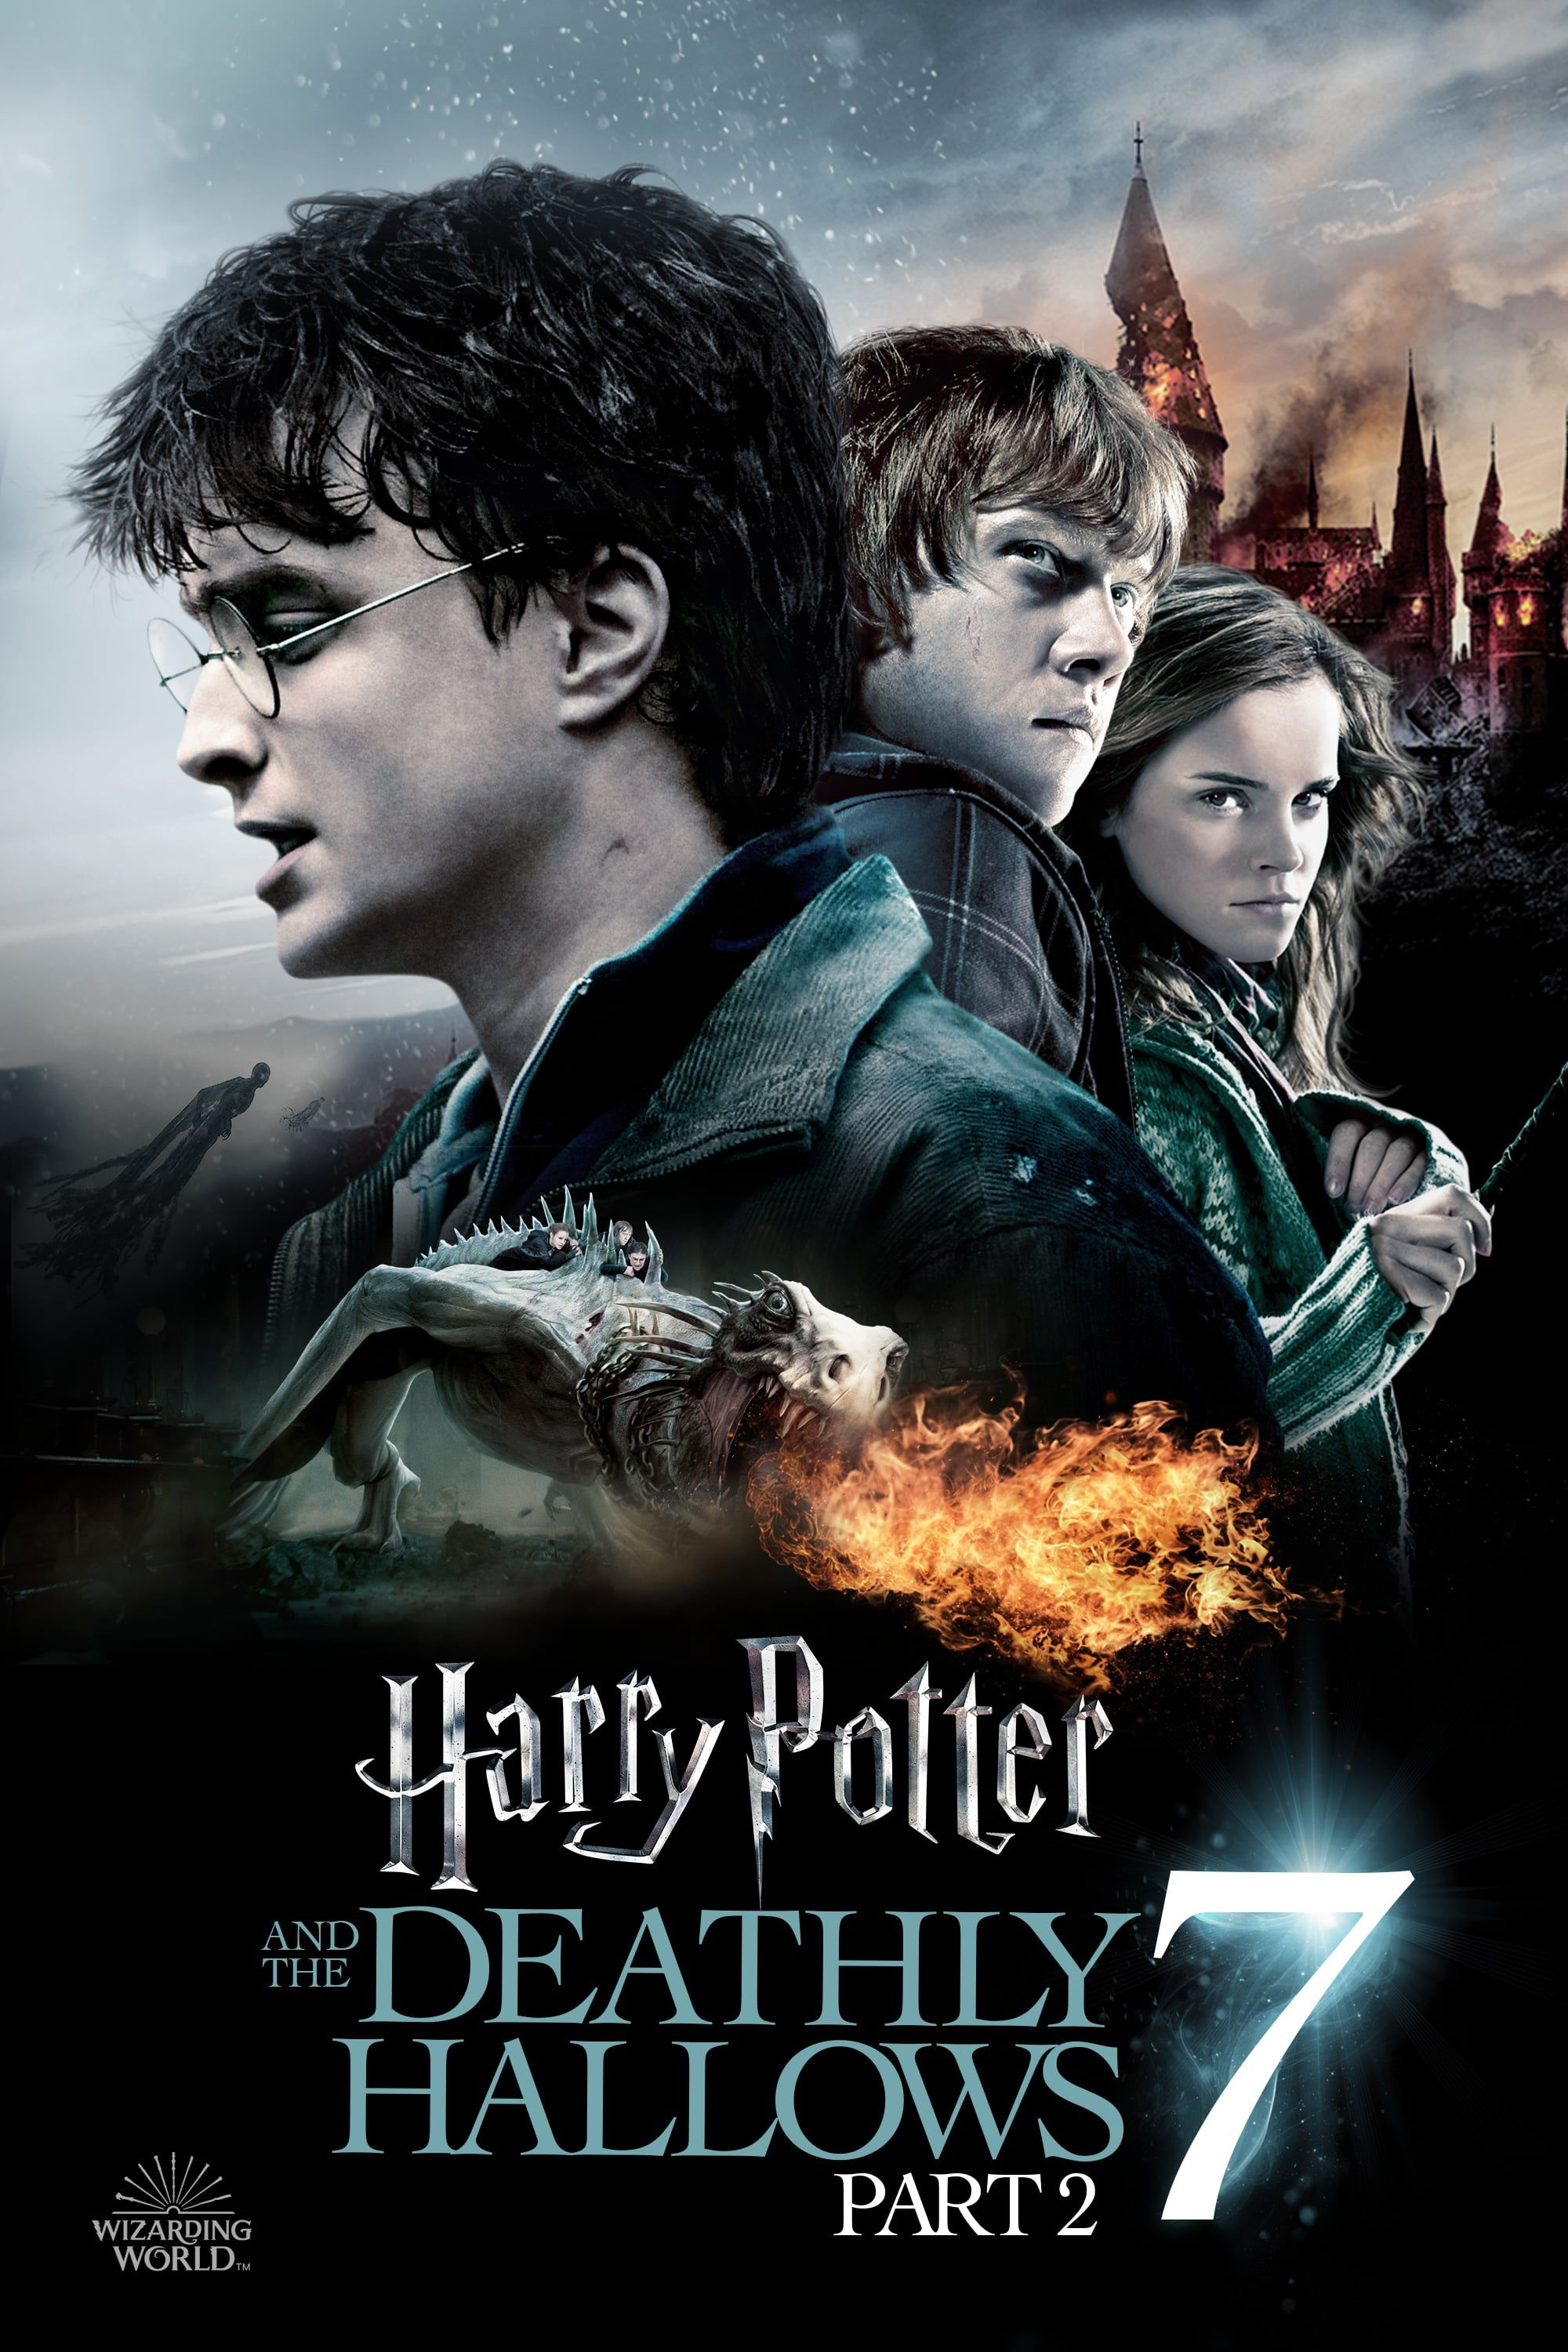 Harry Potter And The Deathly Hallows Part 2 Film Cmplet En Francais Harry Potter Filme Assistir Filmes Gratis Dublado Atores De Harry Potter